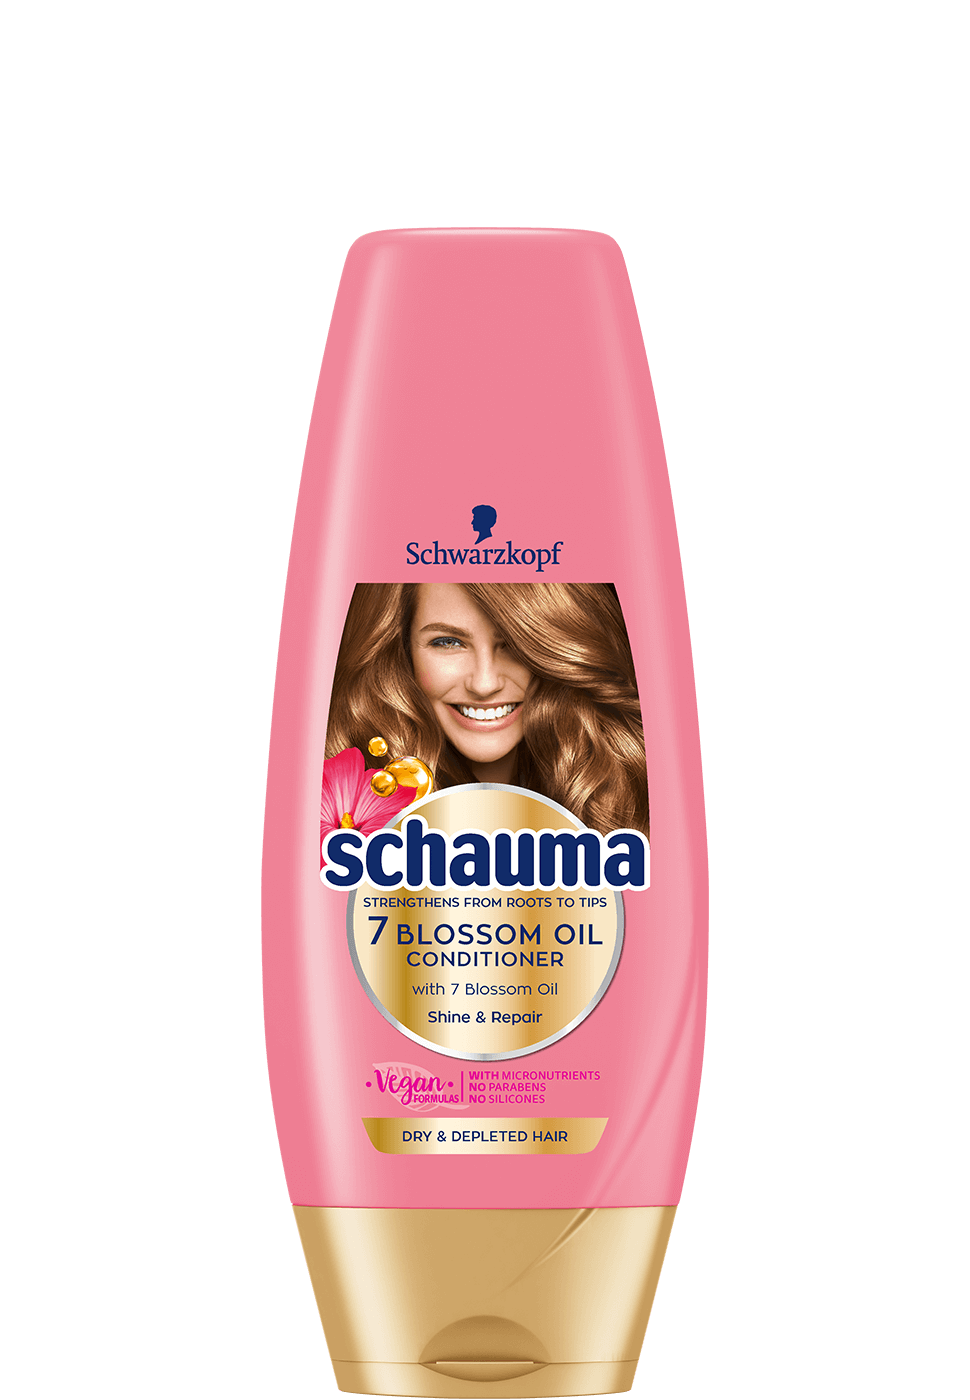 schauma_com_7_blossom_oil_conditioner_970x1400